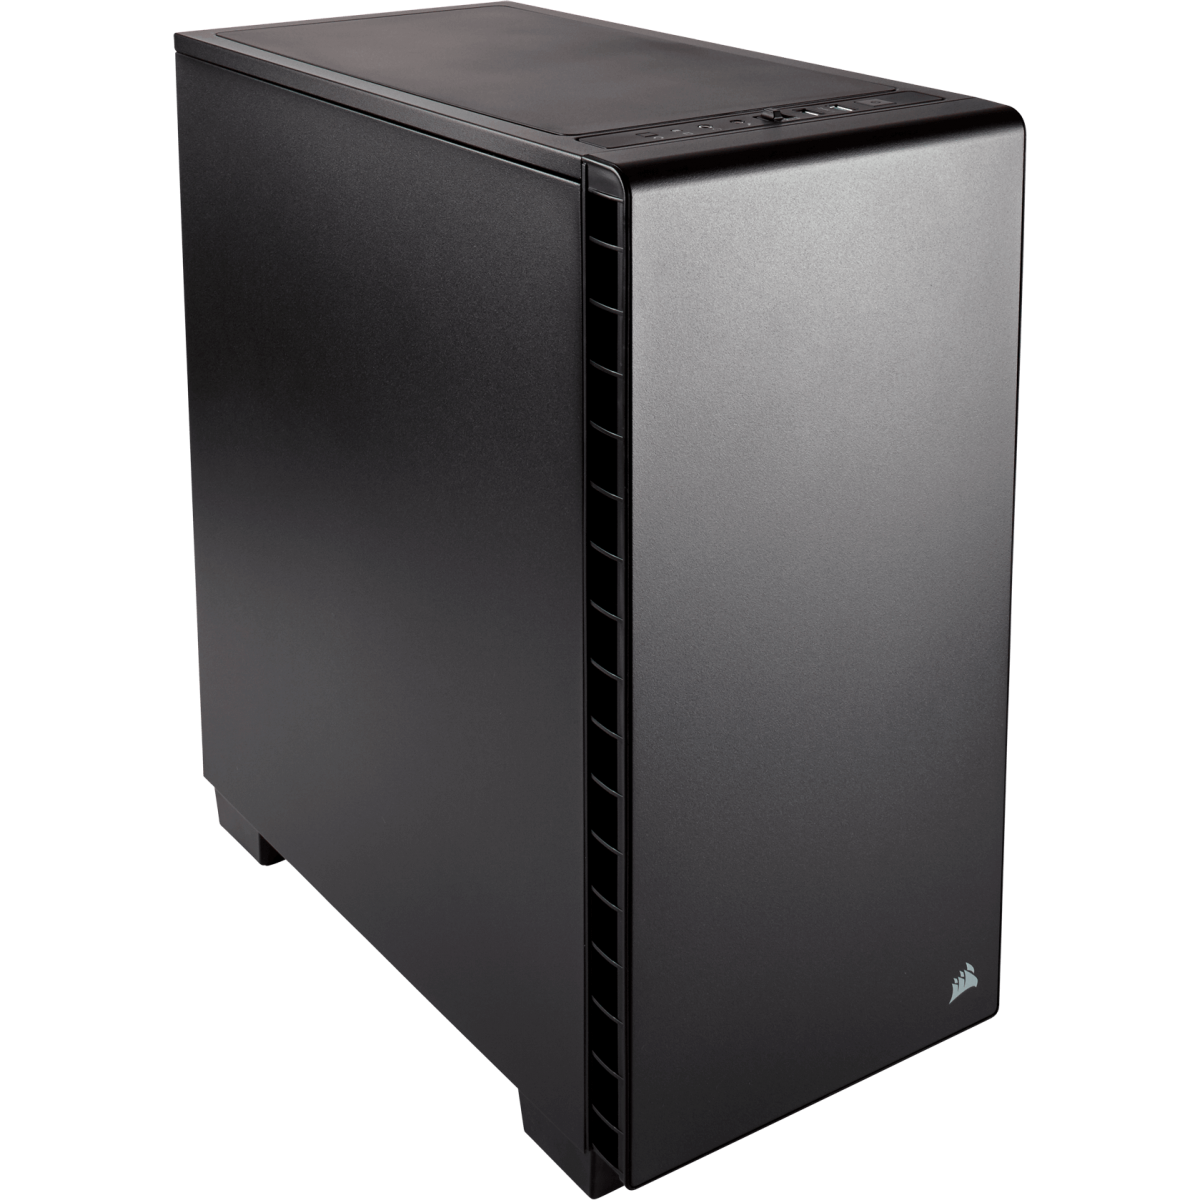 Gabinete Gamer Corsair Carbide Quiet 400Q, Mid Tower, Com 2 Fans, Black, Sem Fonte, CC-9011100-WW